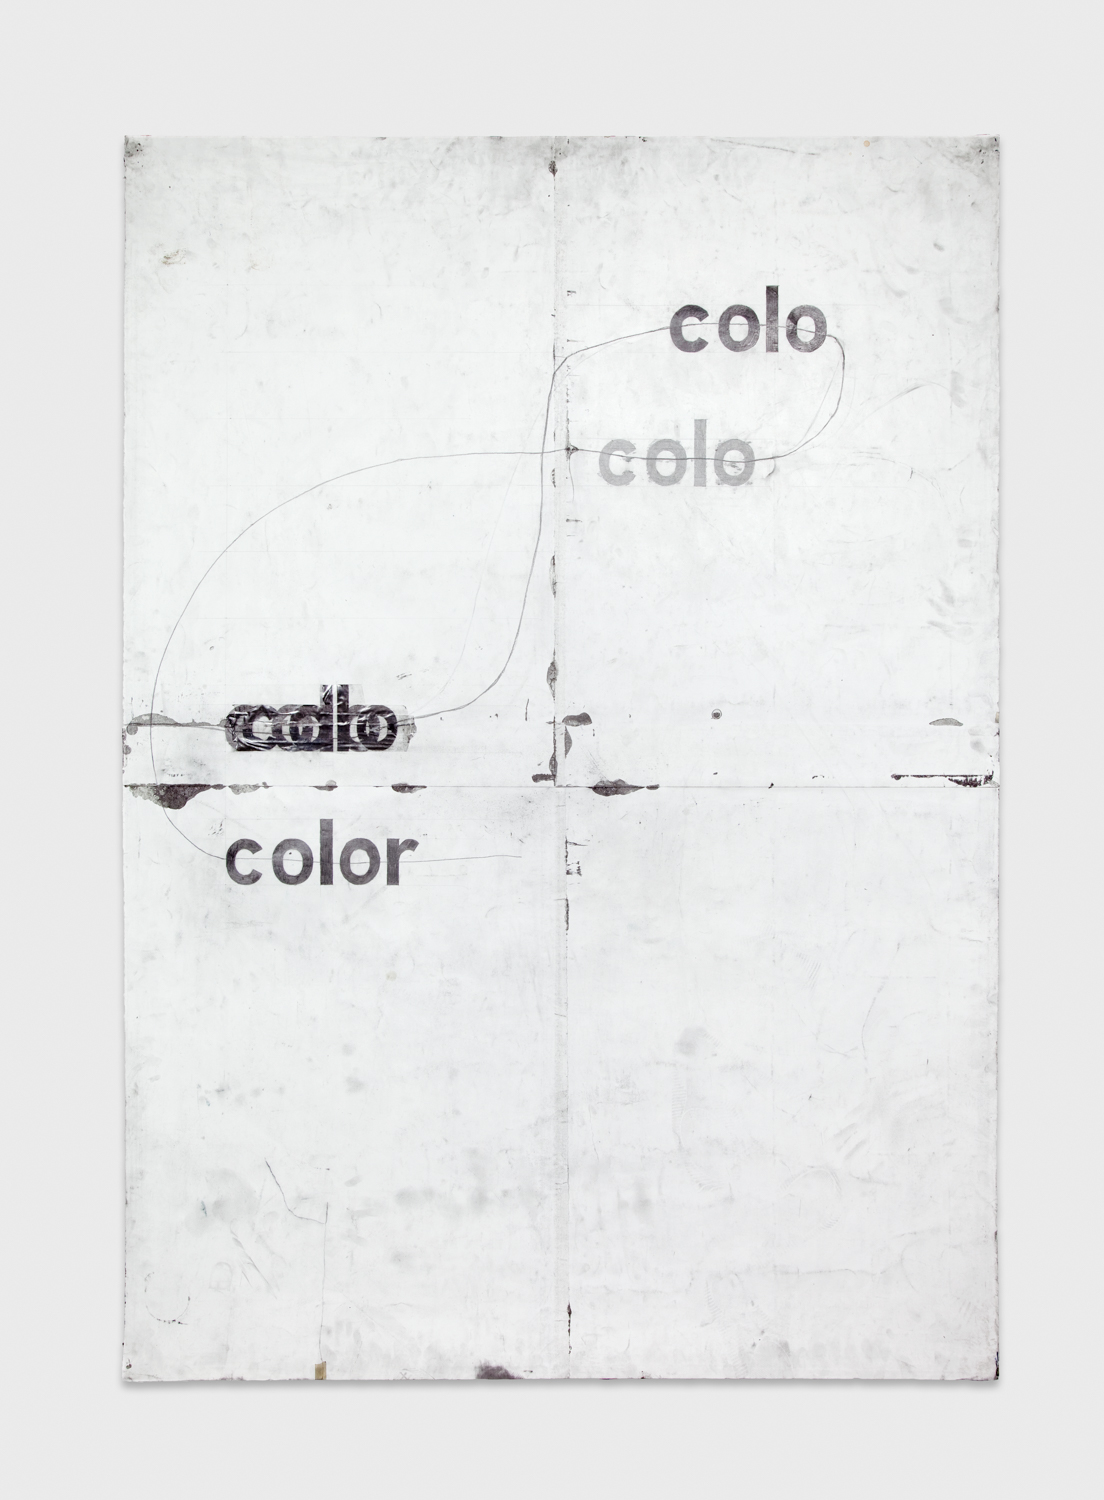 Tony Lewis  roloc colo oloc oloc or colo colo oloc color   2011 Pencil, graphite powder, and tape on paper 84h x 60w in TL001